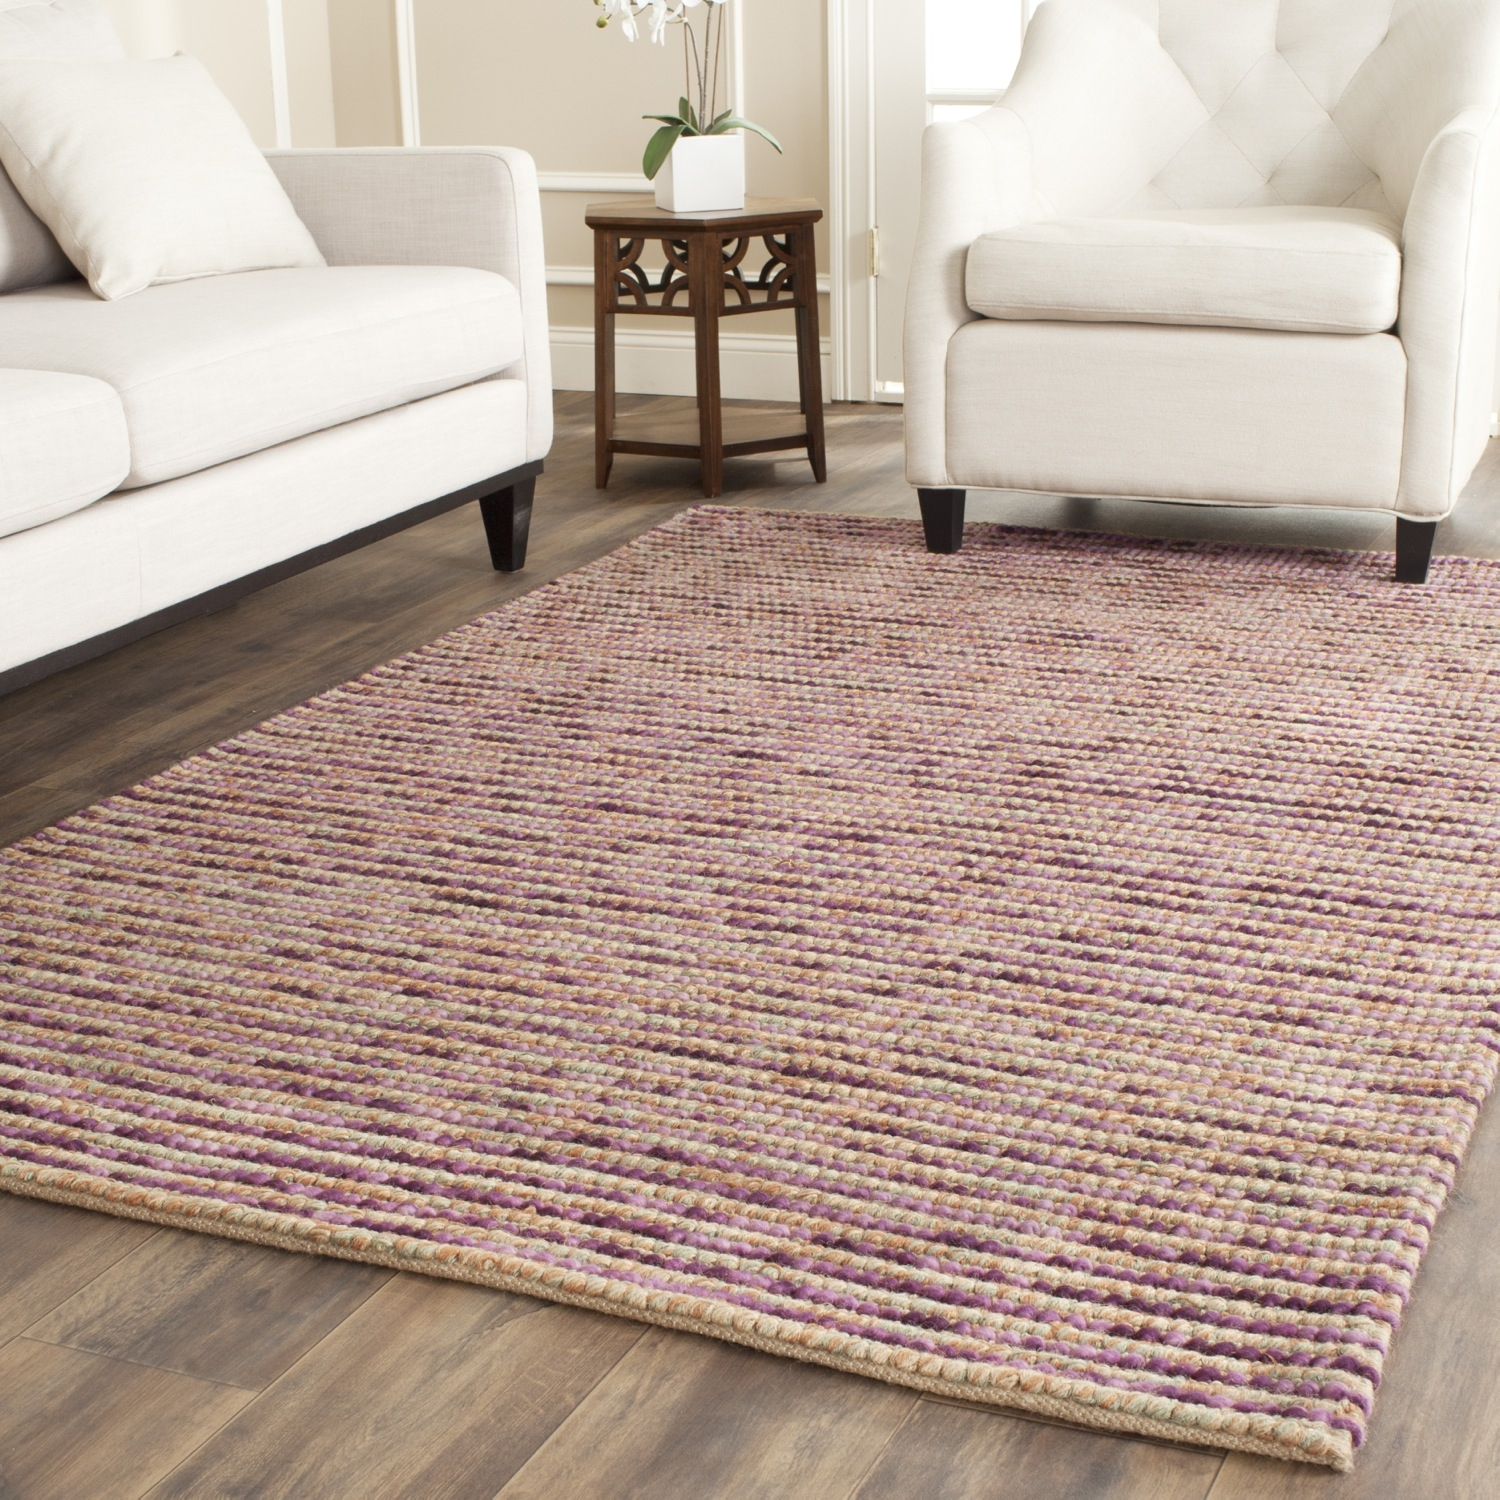 wool rug 4x6 - area rug ideas 4x6 Rug